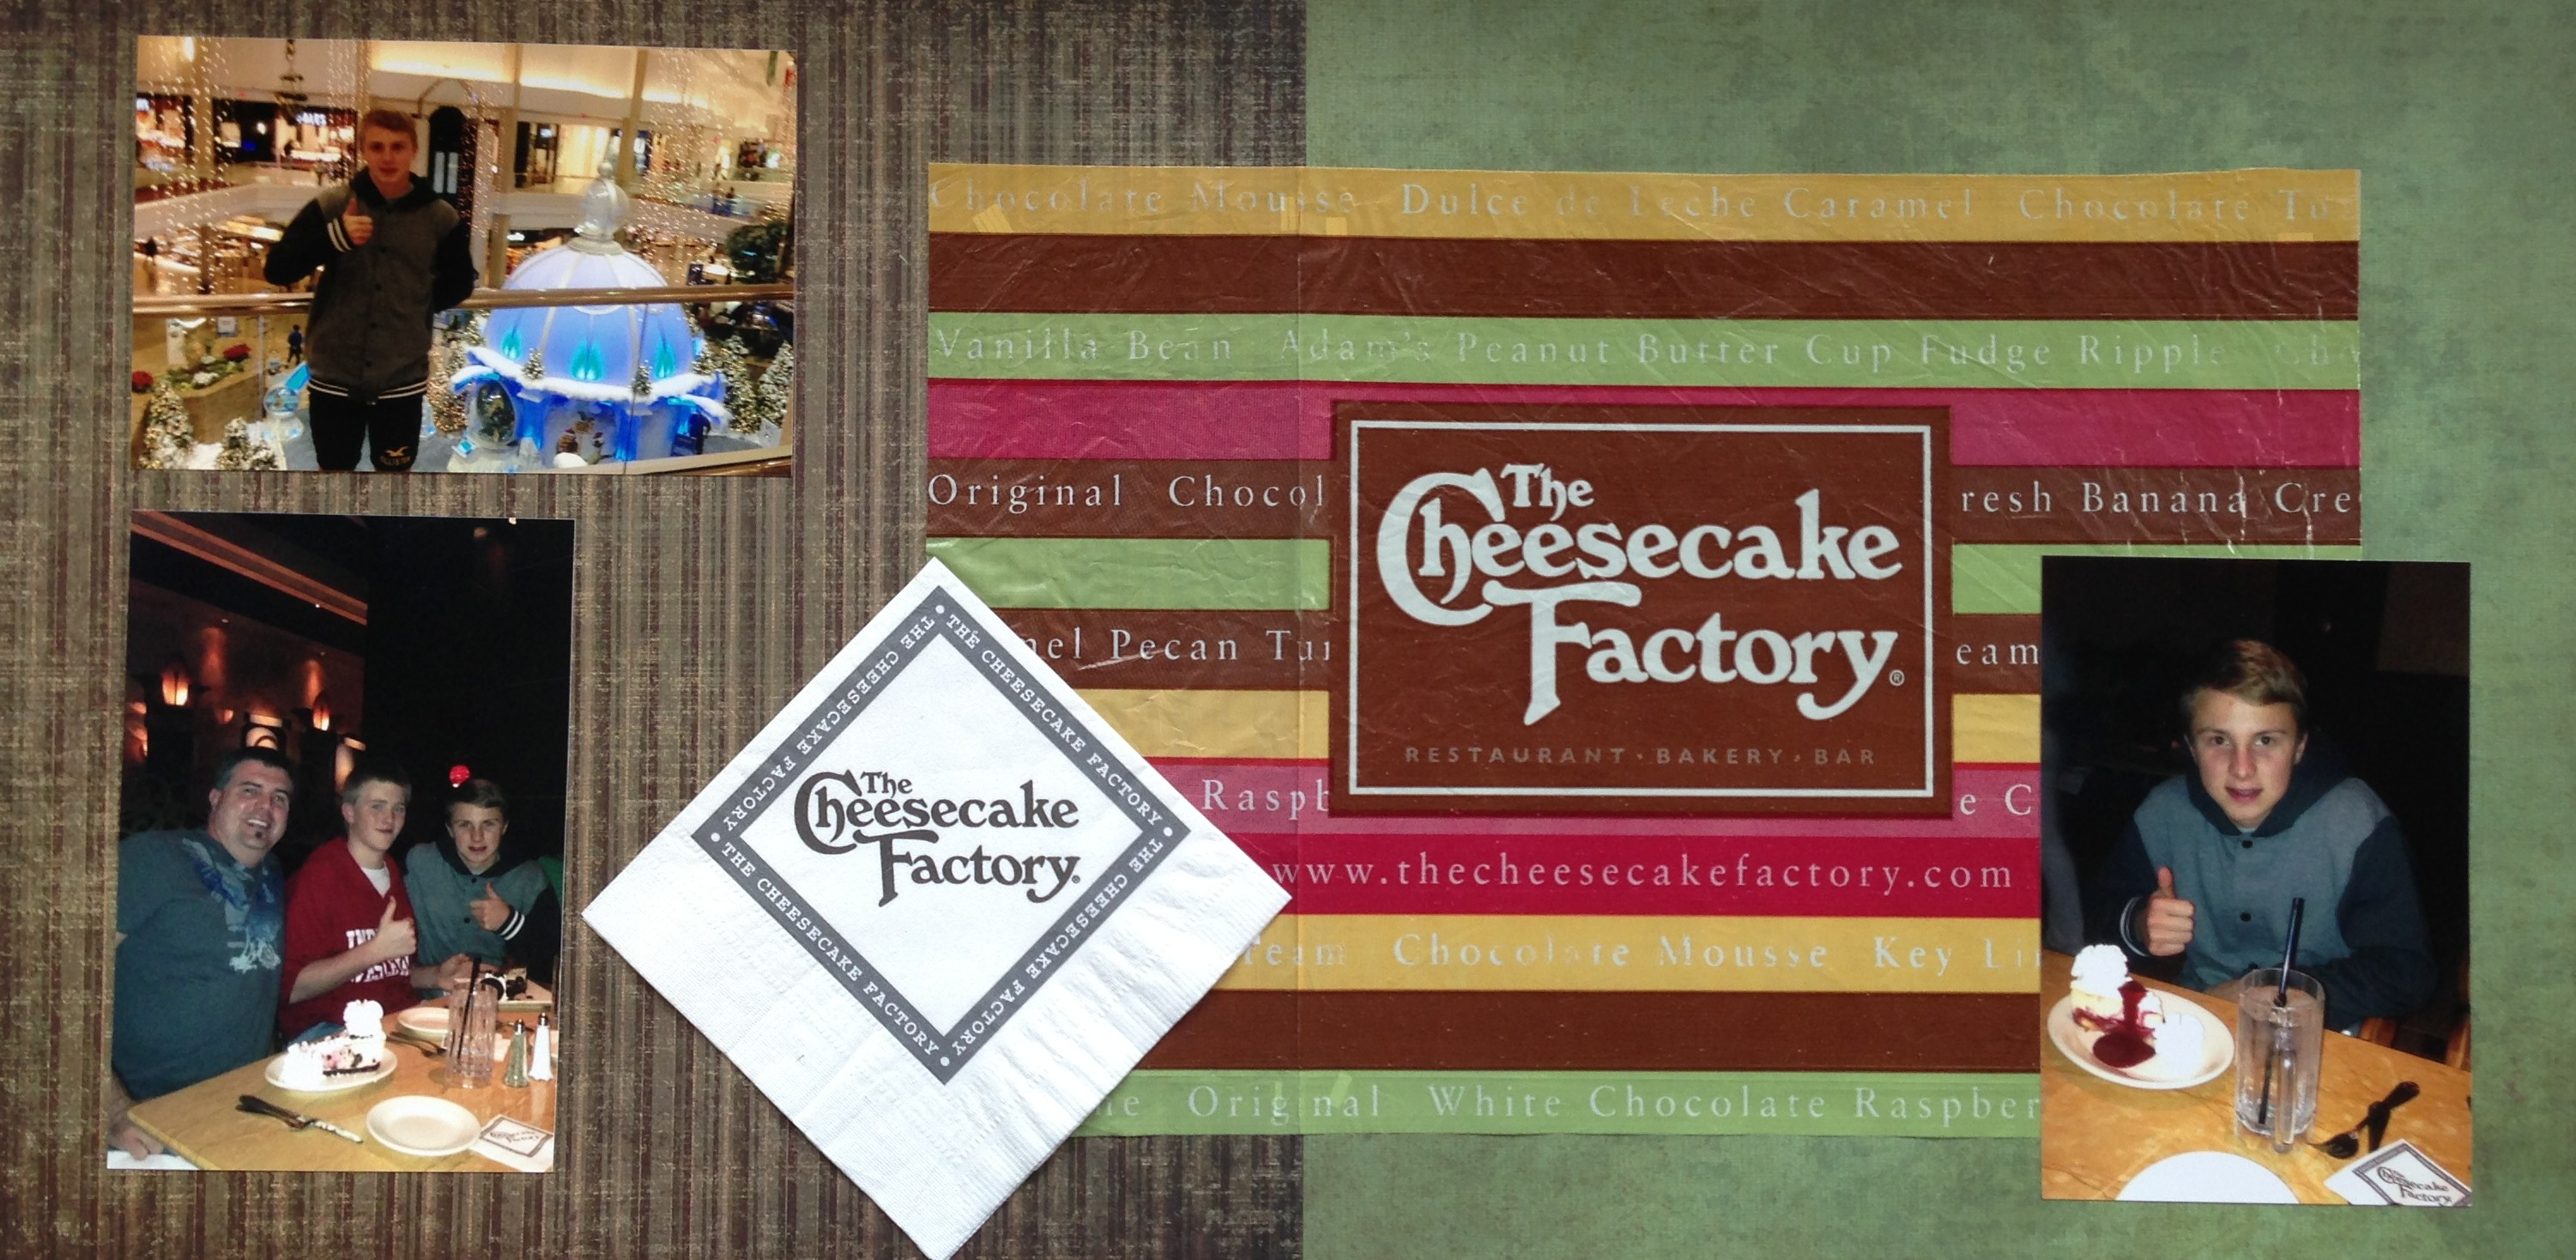 Cheesecake Factory coupons and specials. Get Half-Price Cheesecakes at the Cheesecake factory from July 29 – The Cheesecake Factory promotes annual half-price (50 Off) Cheesecake Days. this year the days are on Wednesday and Thursday, July 29 and 30,